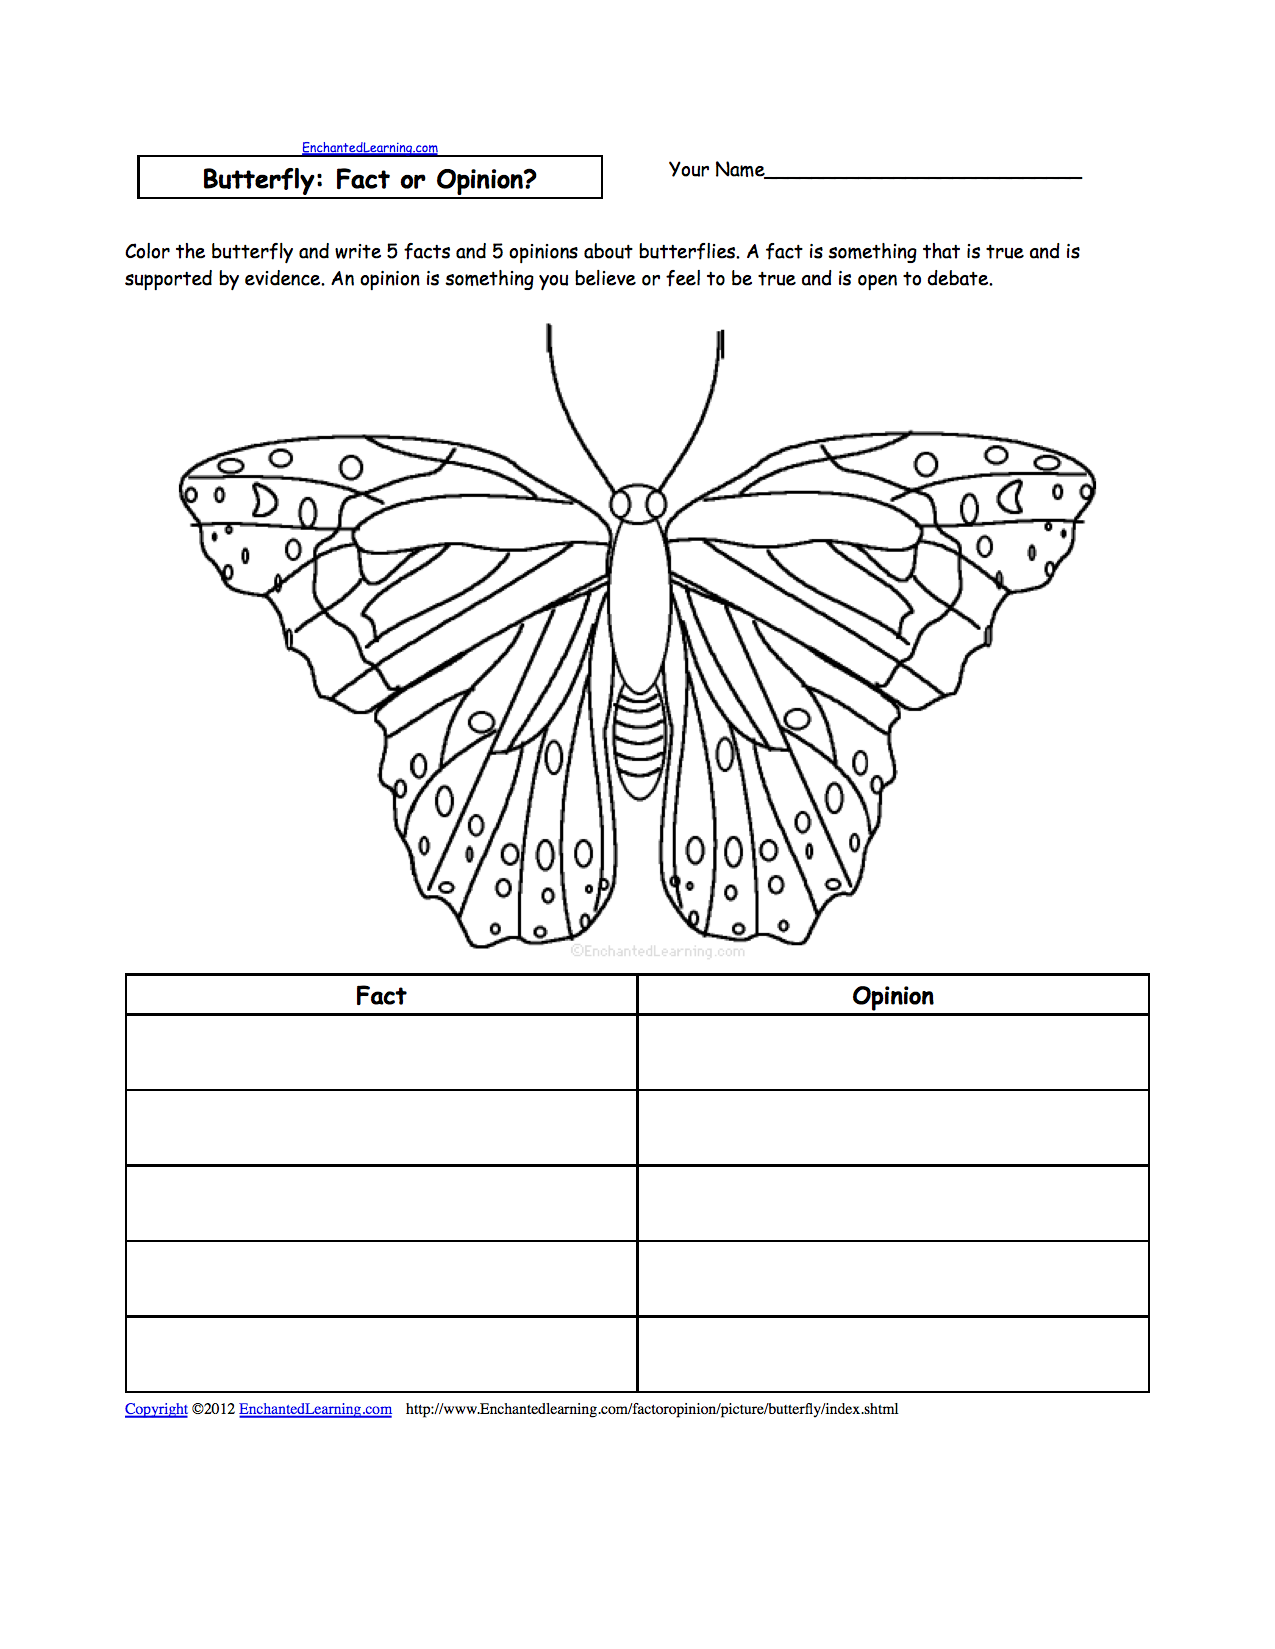 Free coloring pages of butterfly life cycle - Free Coloring Pages Of Butterfly Life Cycle 50